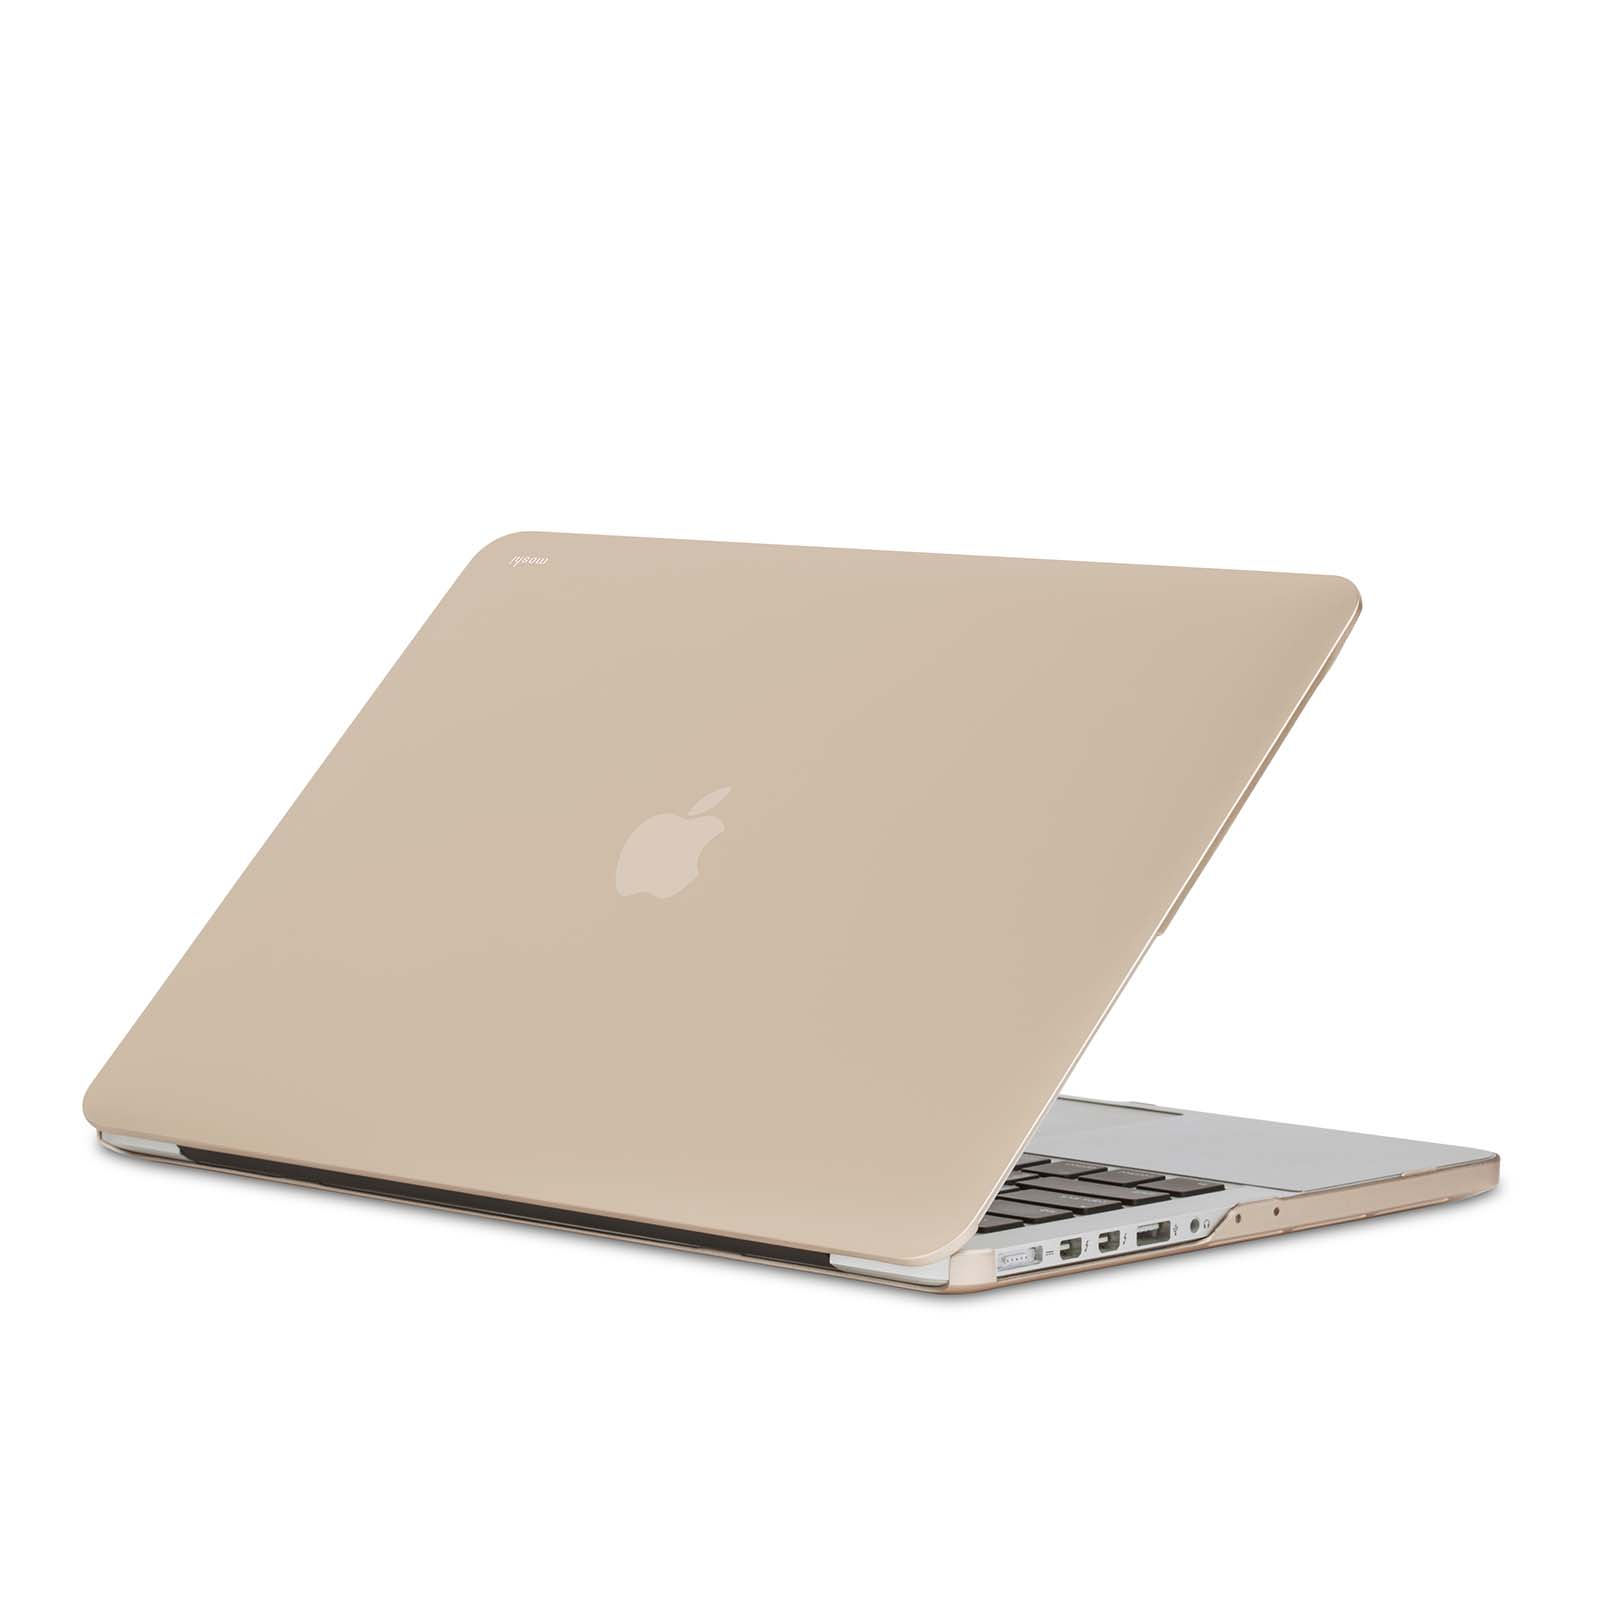 Nye MacBook Pro 13-inch Case - Shop MacBook Covers | Gold iGlaze Pro DY-06